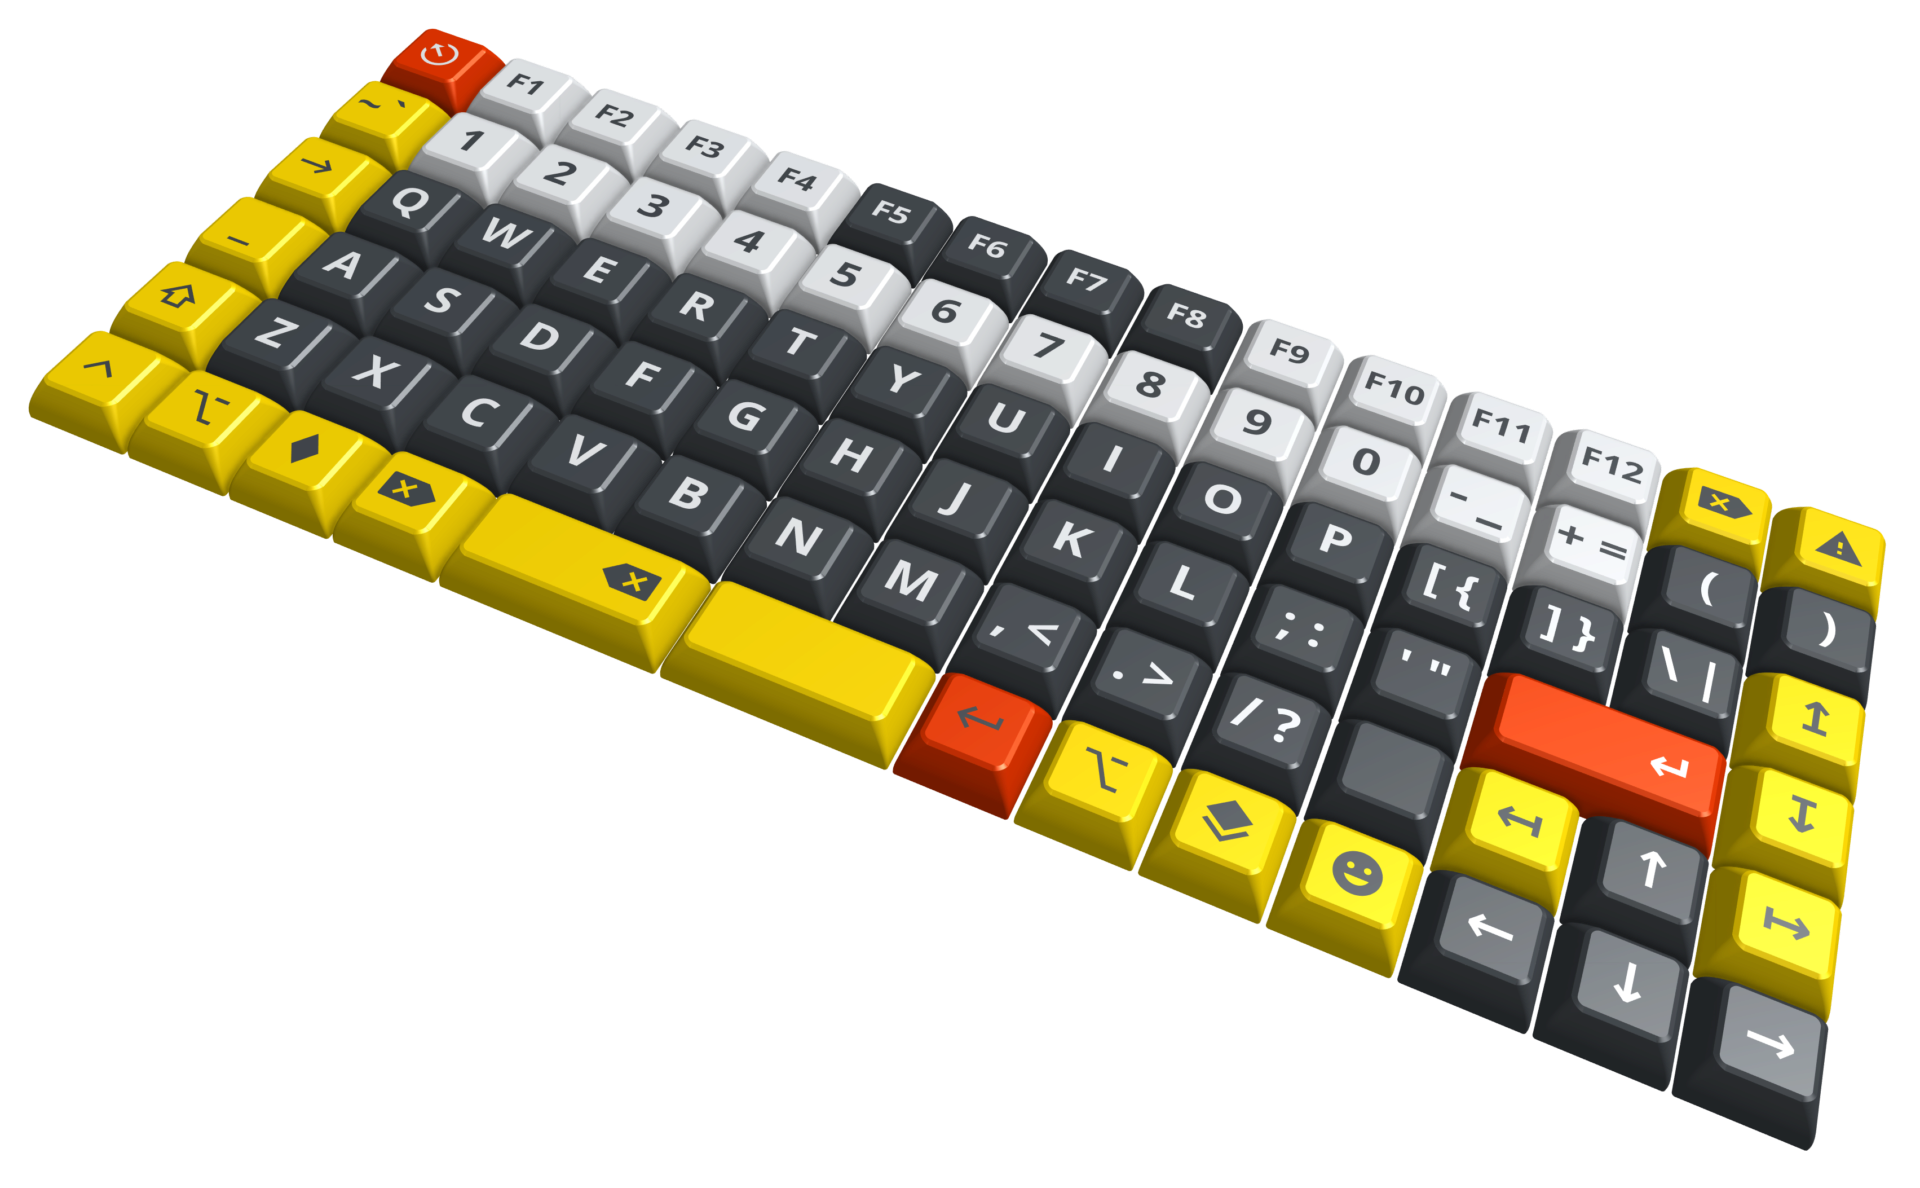 render of keycap set, with legends